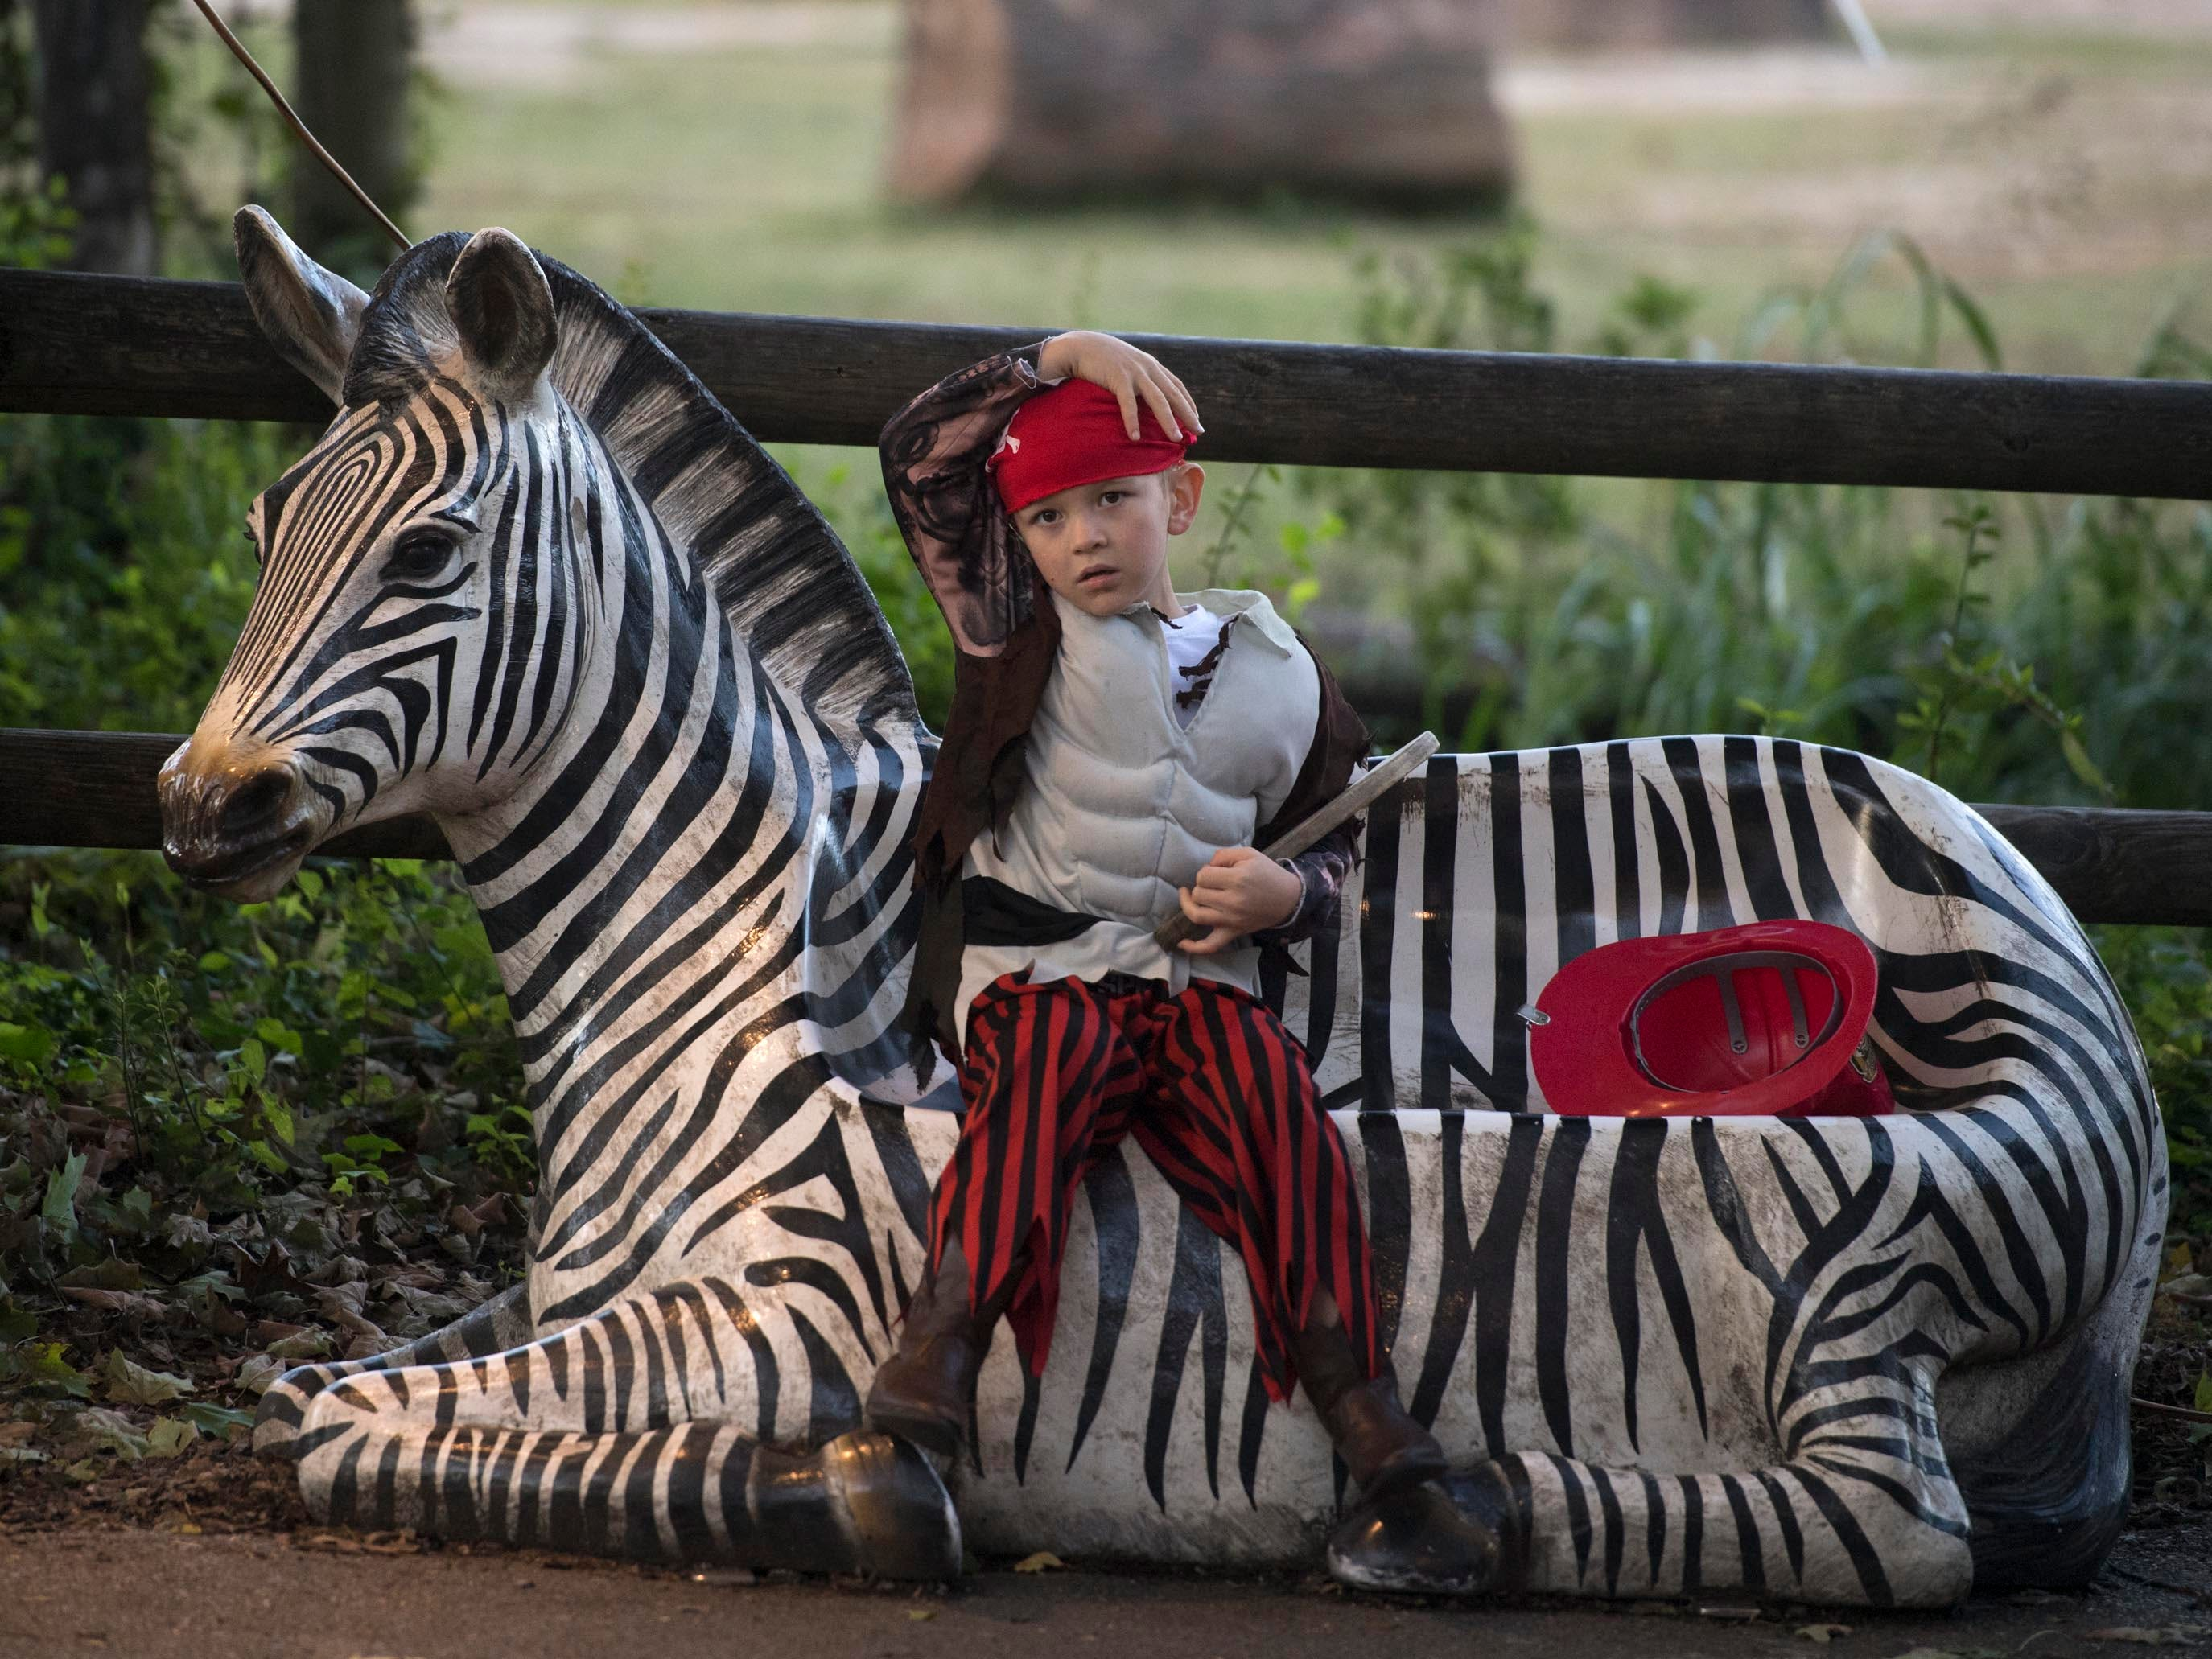 A young pirate rests on a zebra bench during Zoo Knoxville's Boo! at the Zoo on Saturday, October 20, 2018.